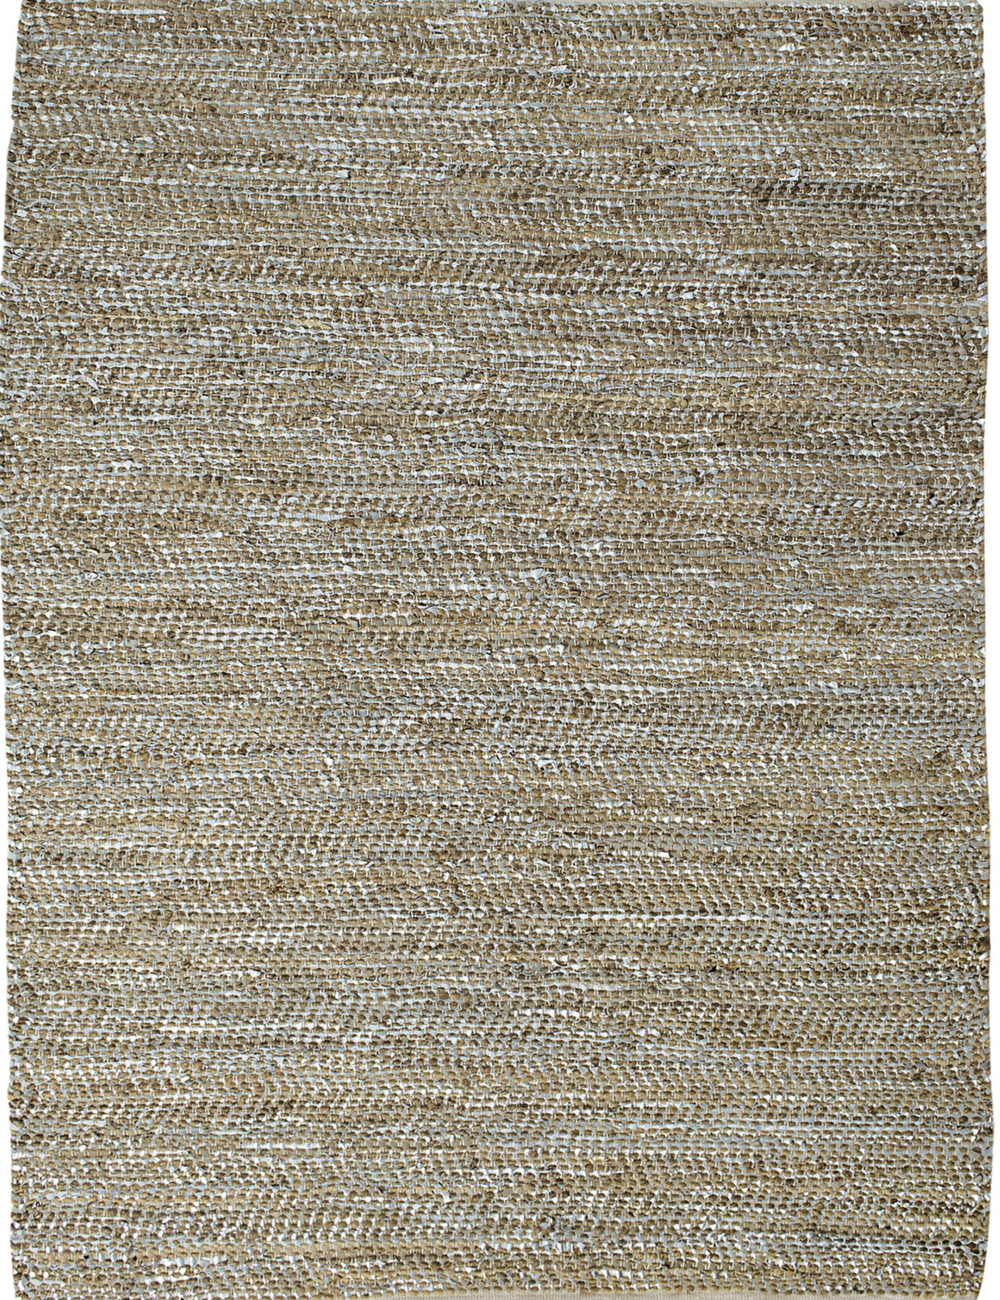 Metallic-Suede-Hemp-Rug-serena-and-lily